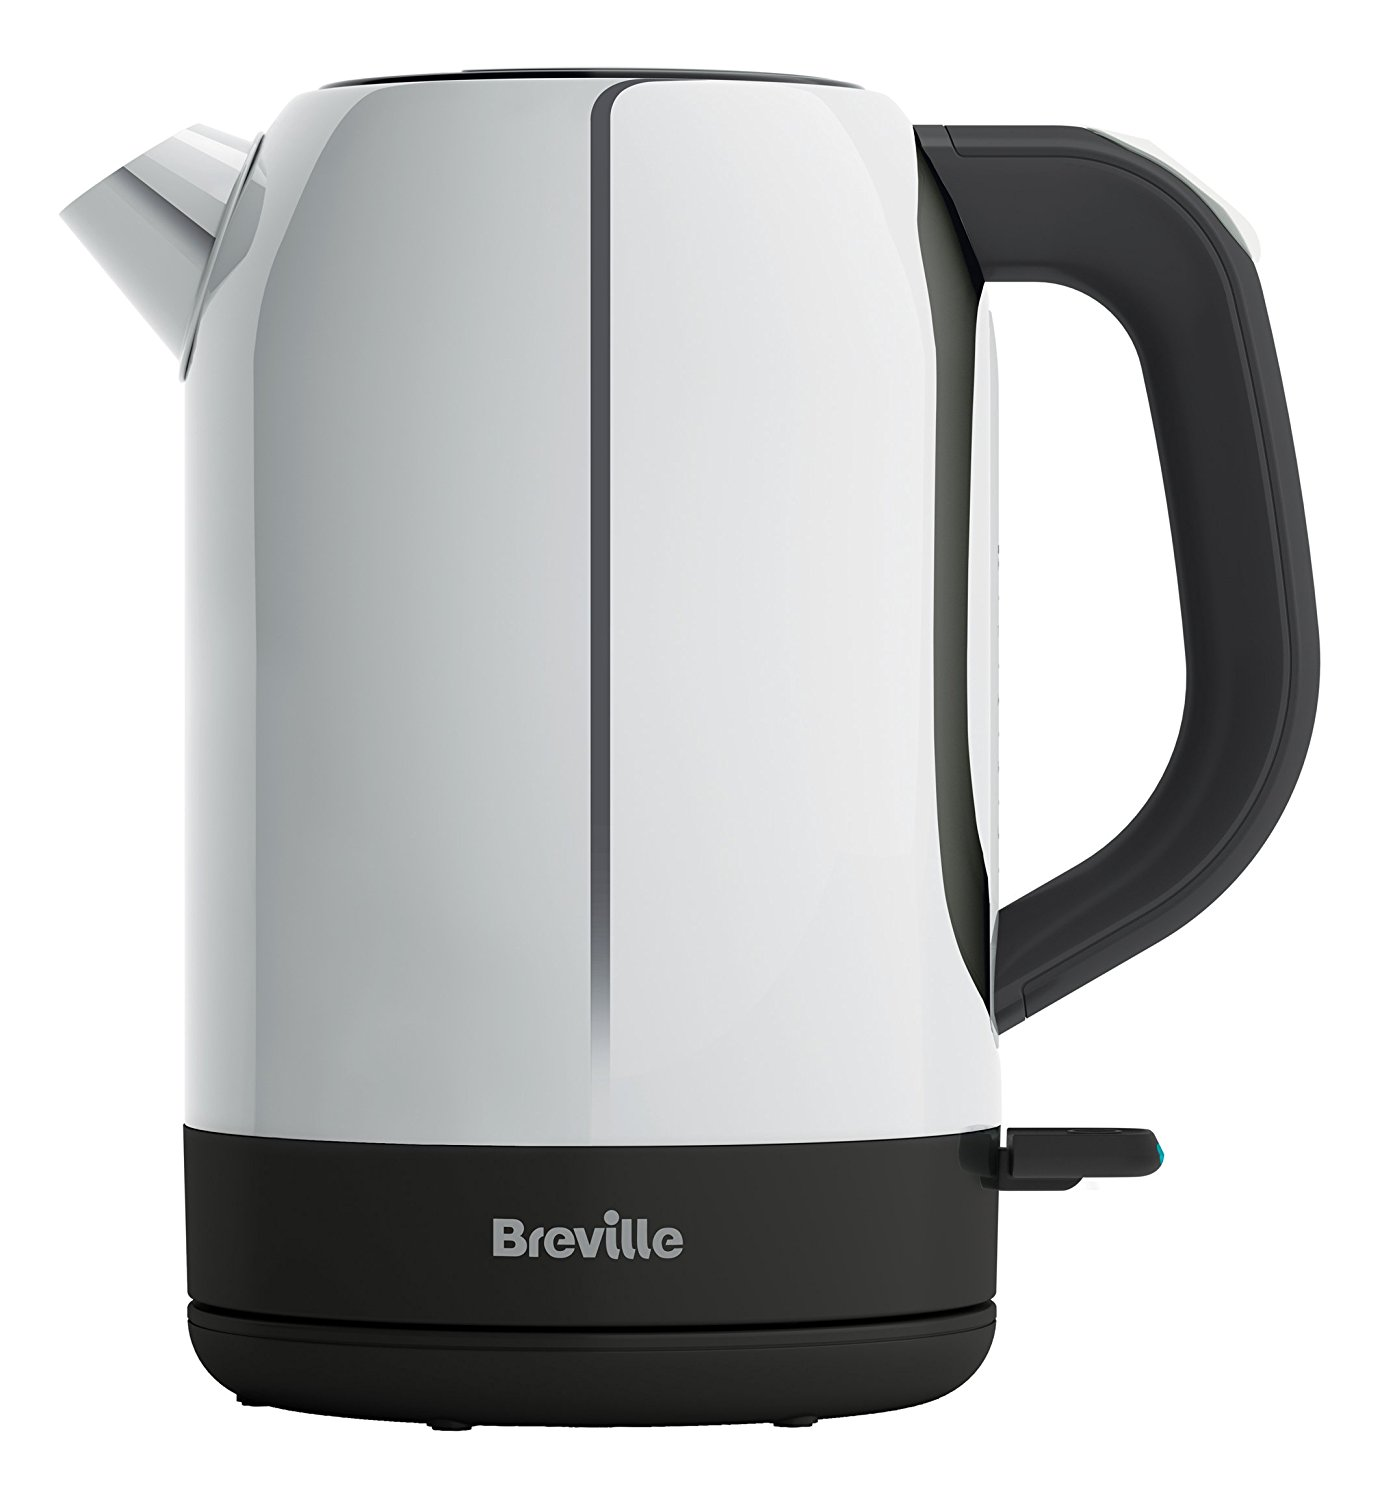 Breville Outline Toaster And Kettle Polished Stainless